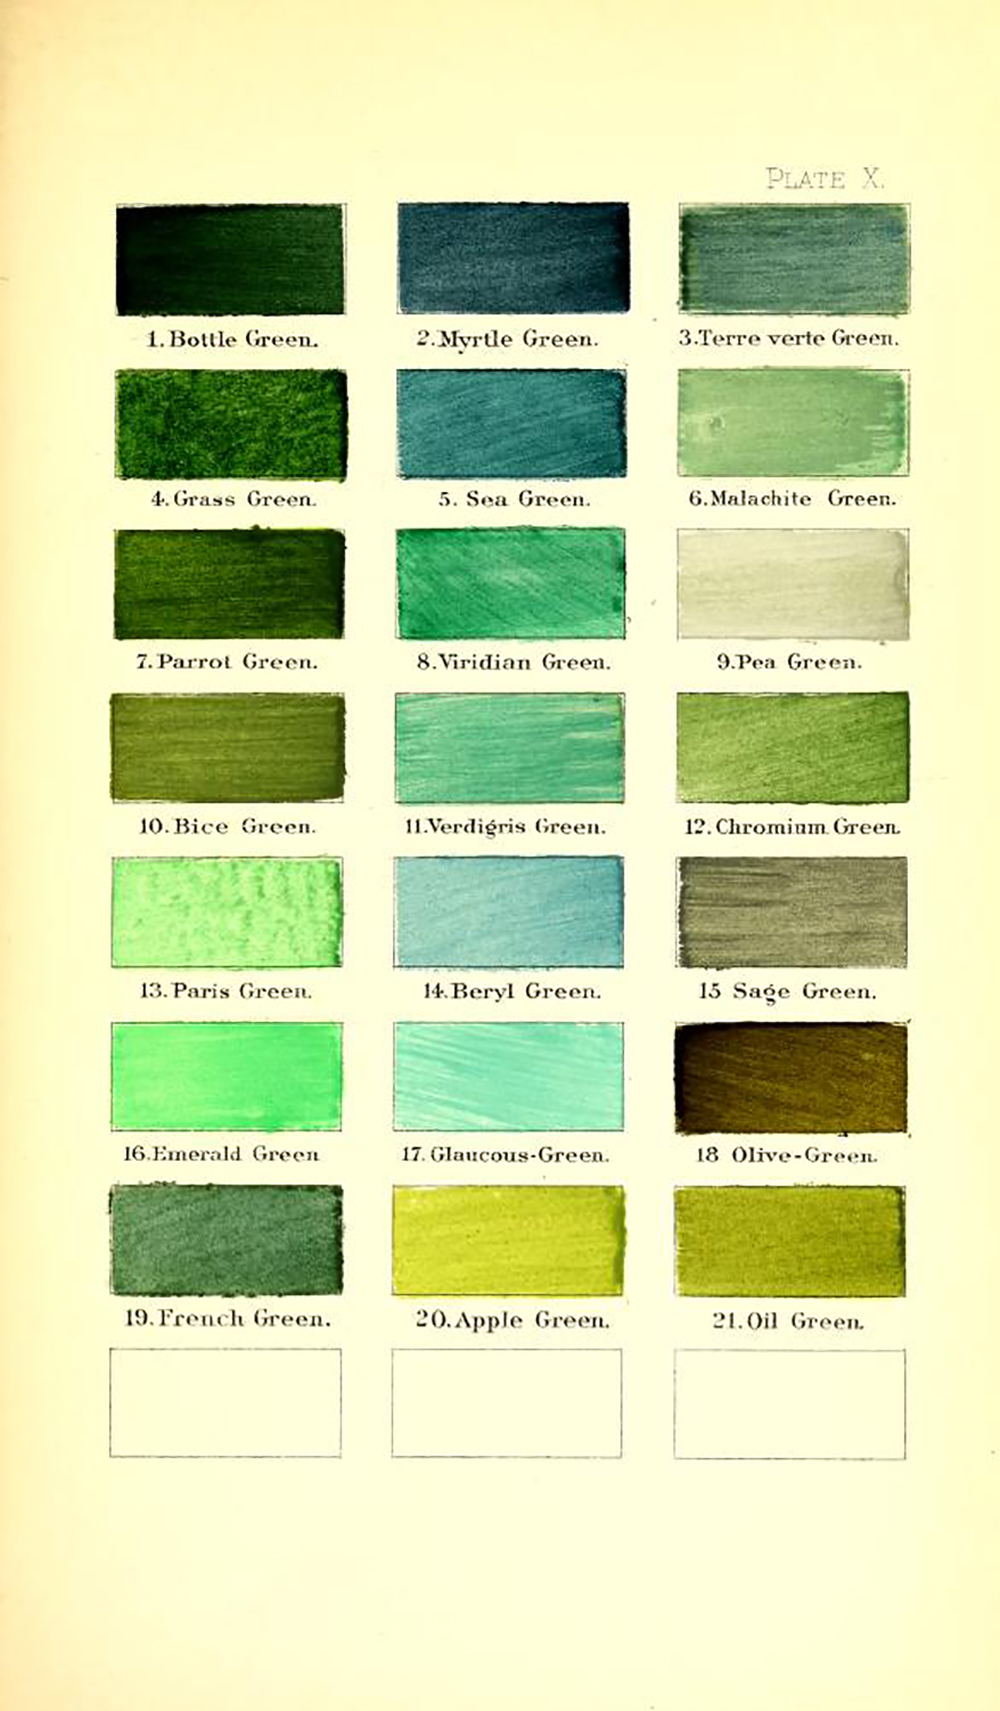 Ridgway color dictionary - greens